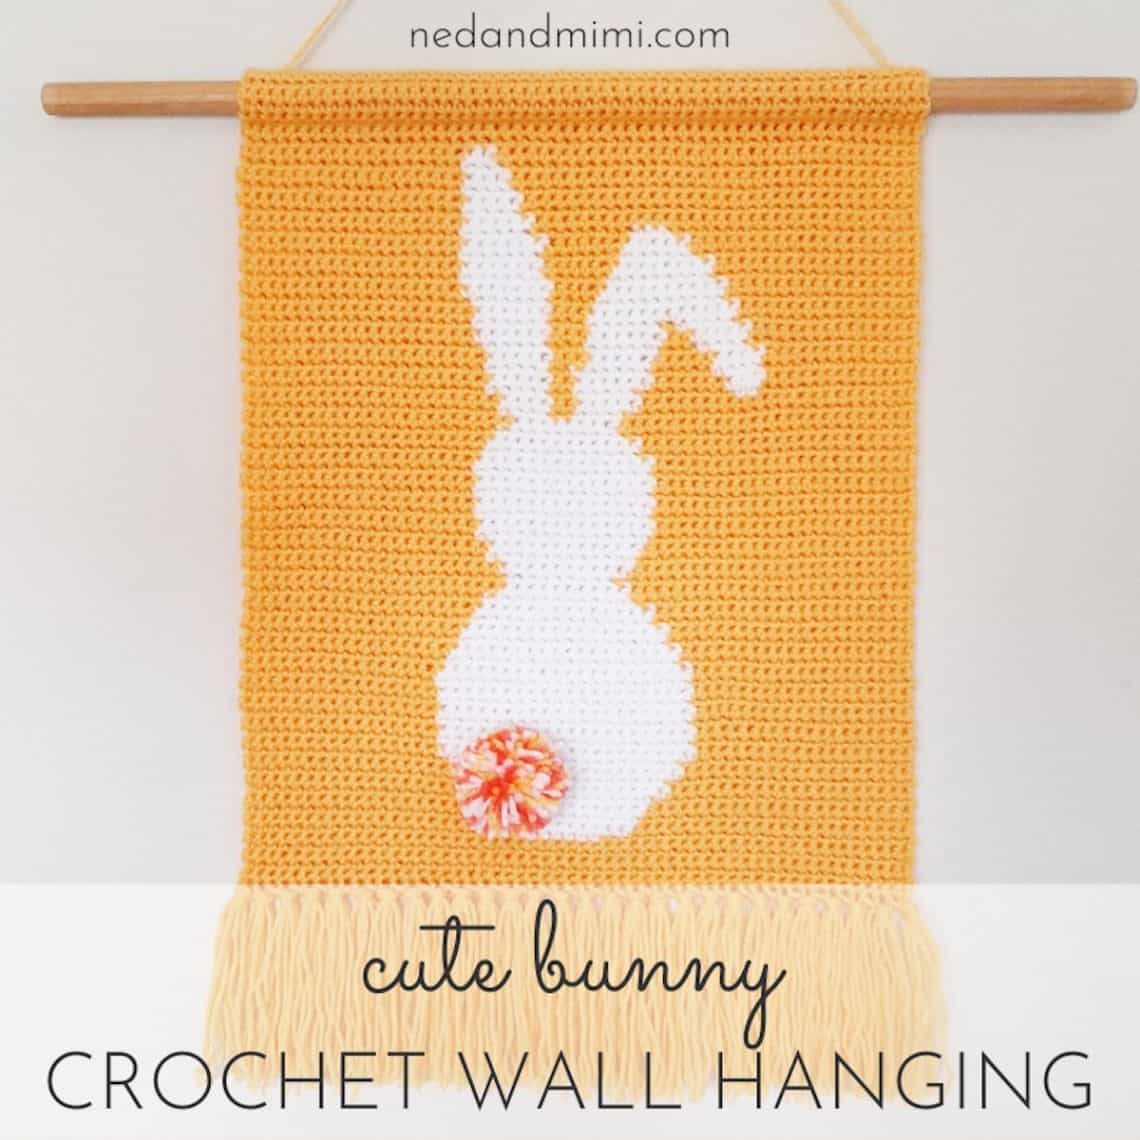 Bunny Crochet Wall Hanging